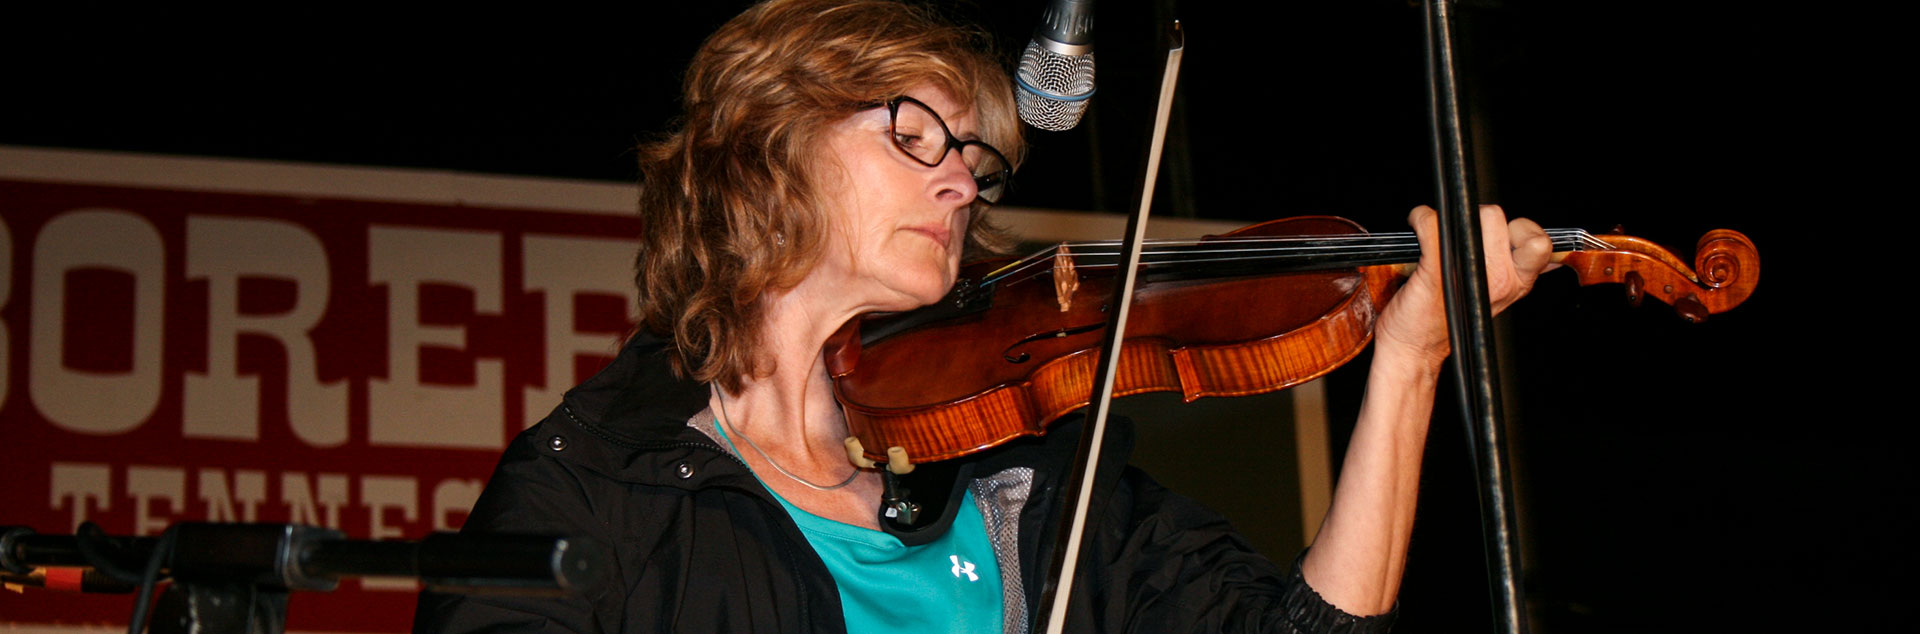 Women playing fiddle